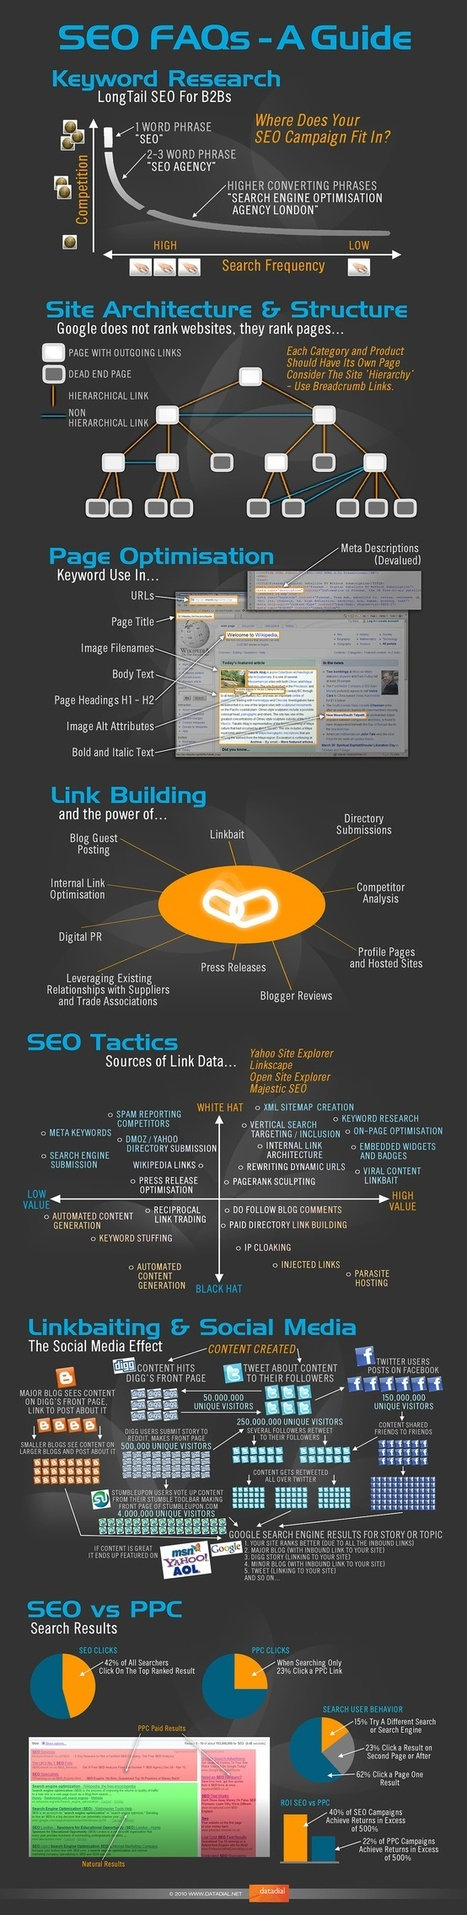 SEO FAQ's Guide [Infographic] | An Expat Freelance Writer's Thoughts | Scoop.it